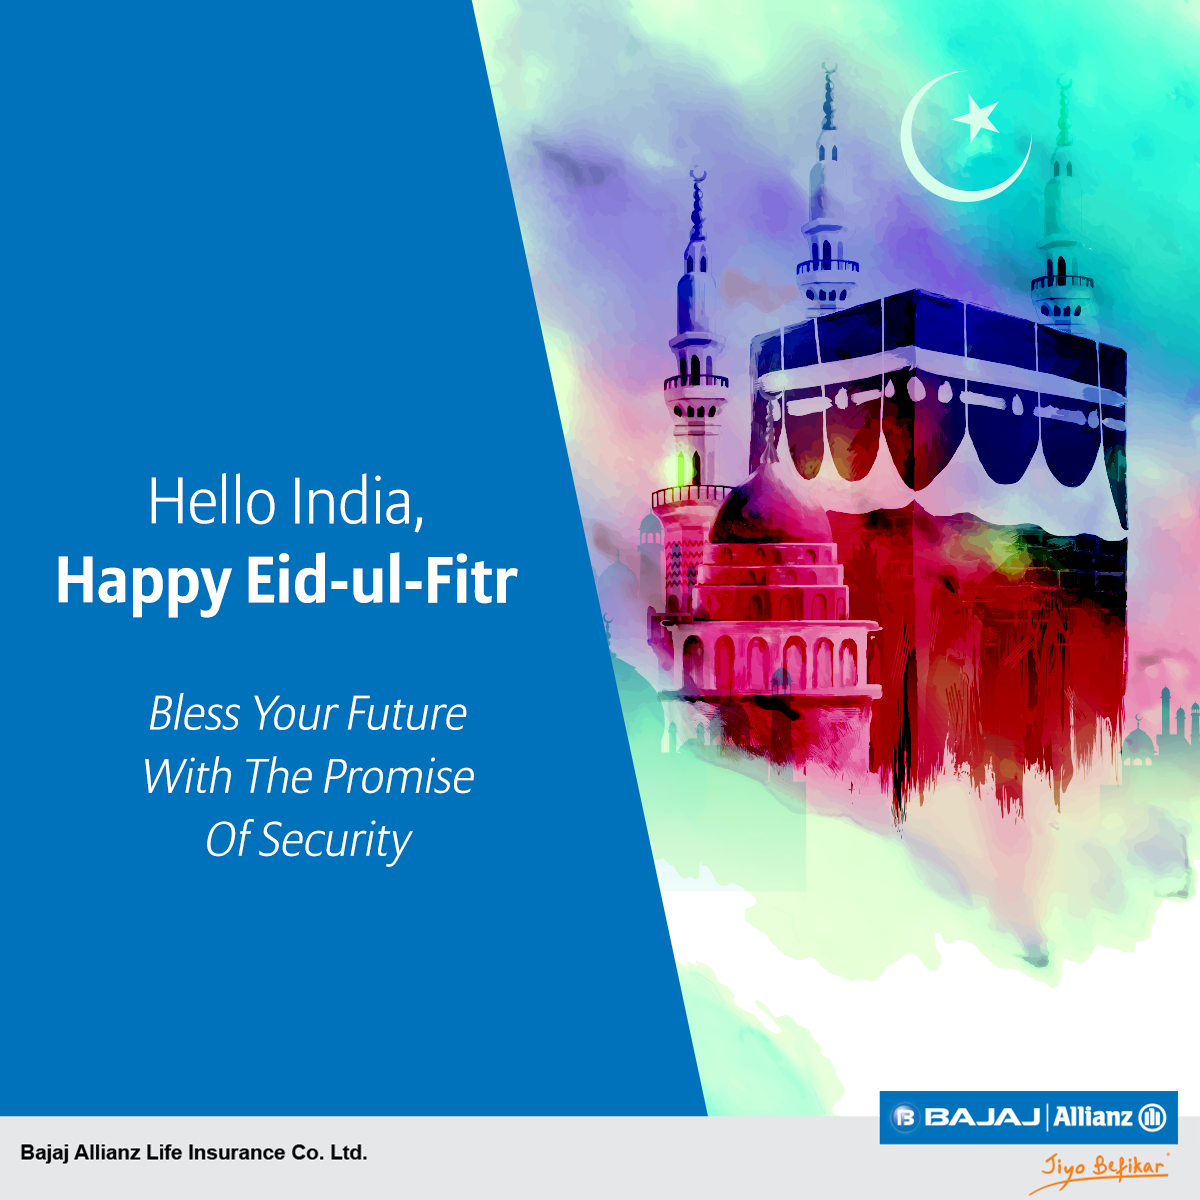 May your future be filled with joy & prosperity. Wishing